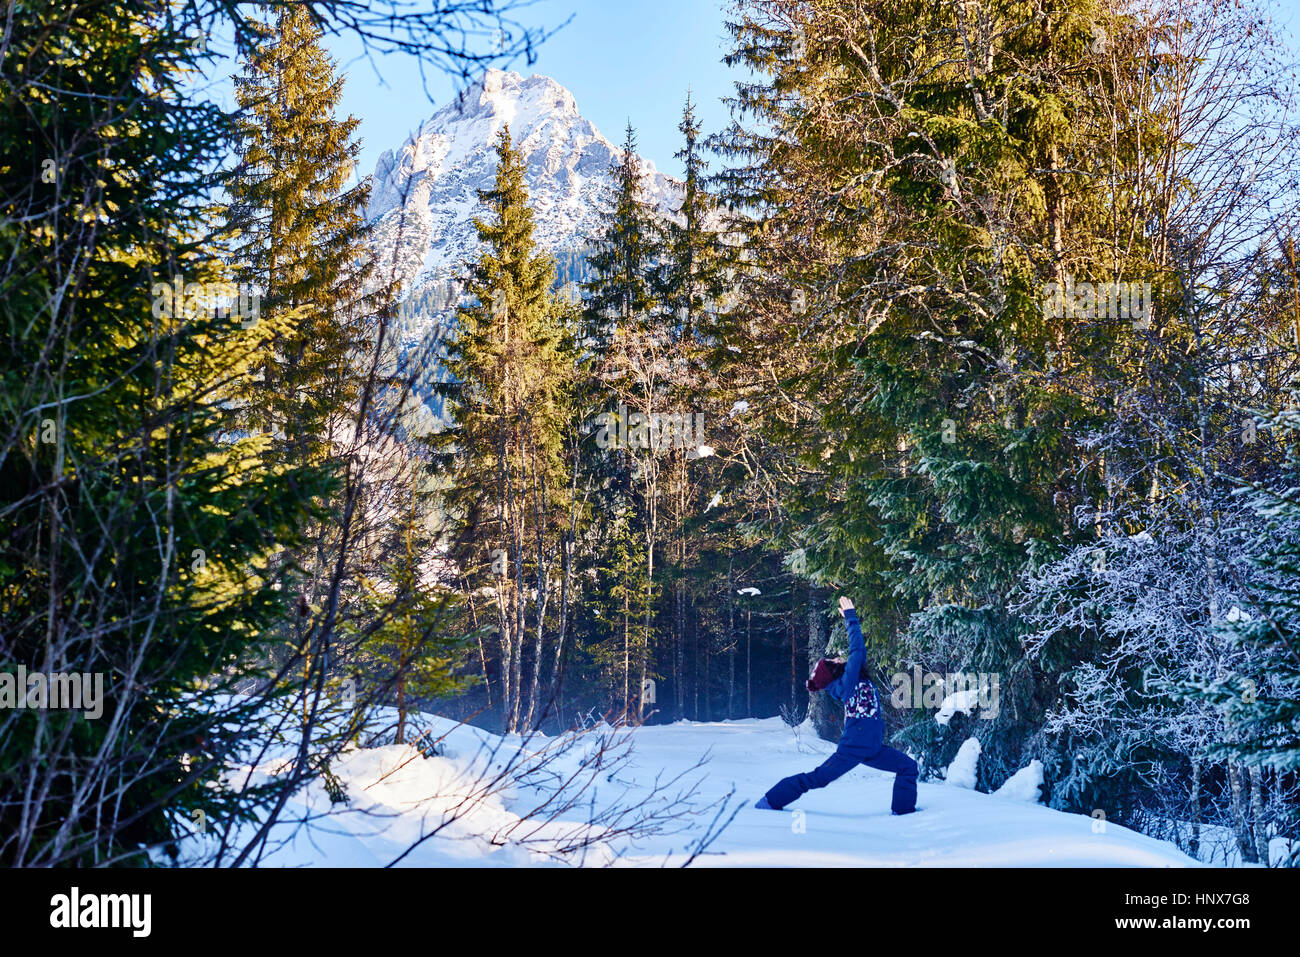 Woman in winter clothes practicing warrior yoga pose in snowy forest, Austria - Stock Image